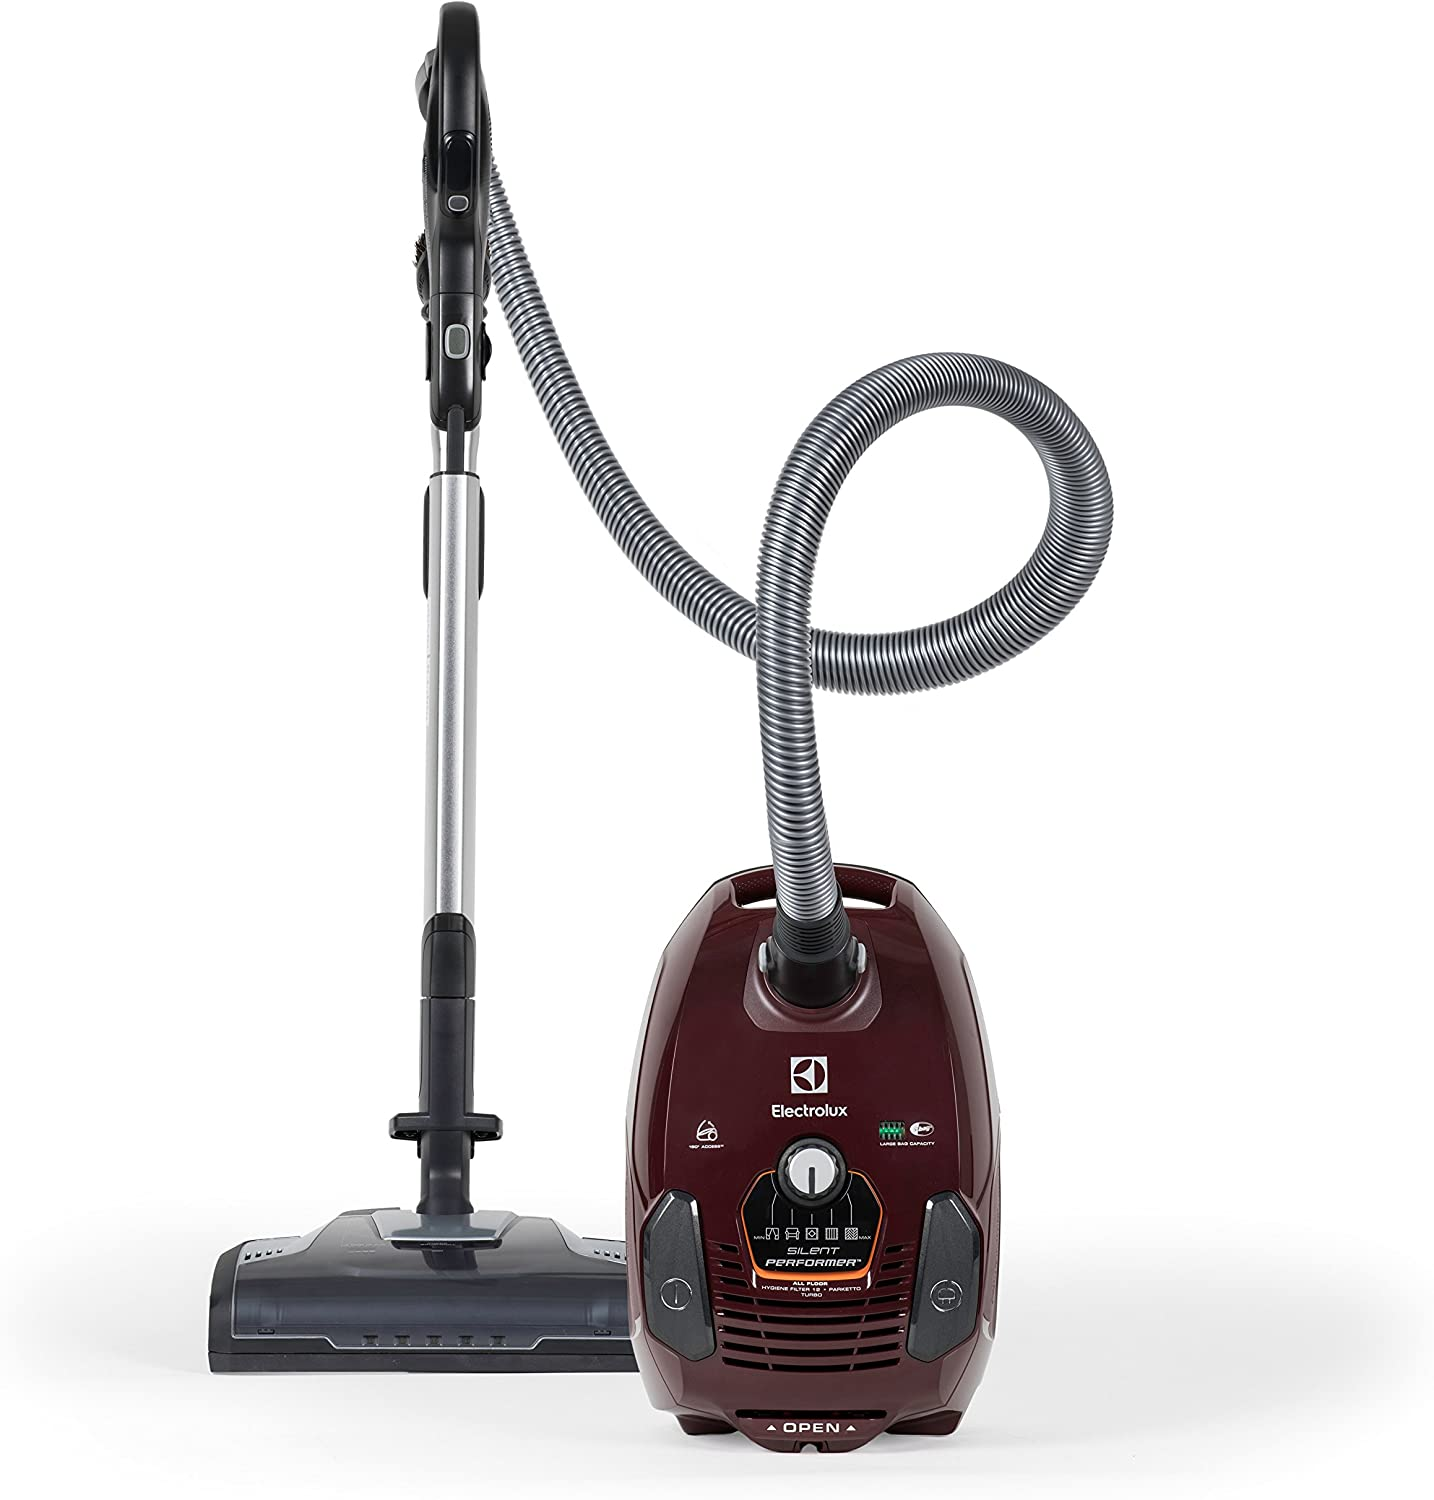 Electrolux EL4015A Silent Performer Canister, Maroon: Amazon